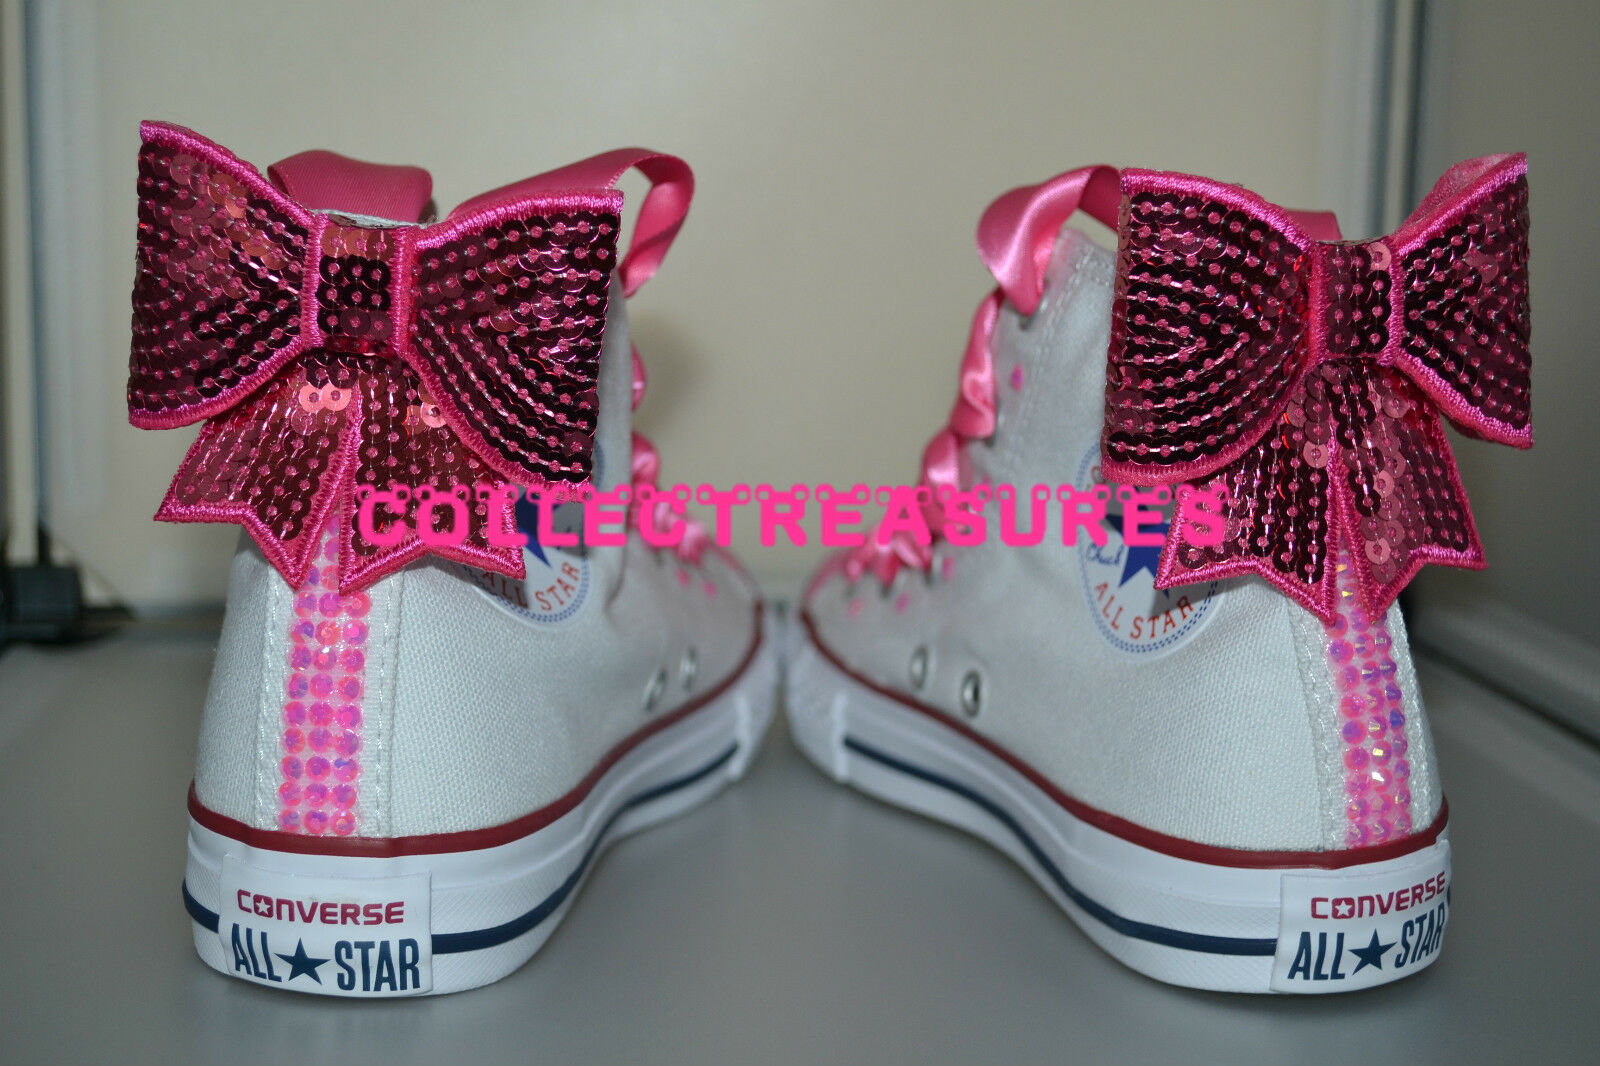 Custom Crystal Diamante Bling WEISS UK Party Wedding Converse Größe UK WEISS 3 4 5 6 7 8 9 1cda69